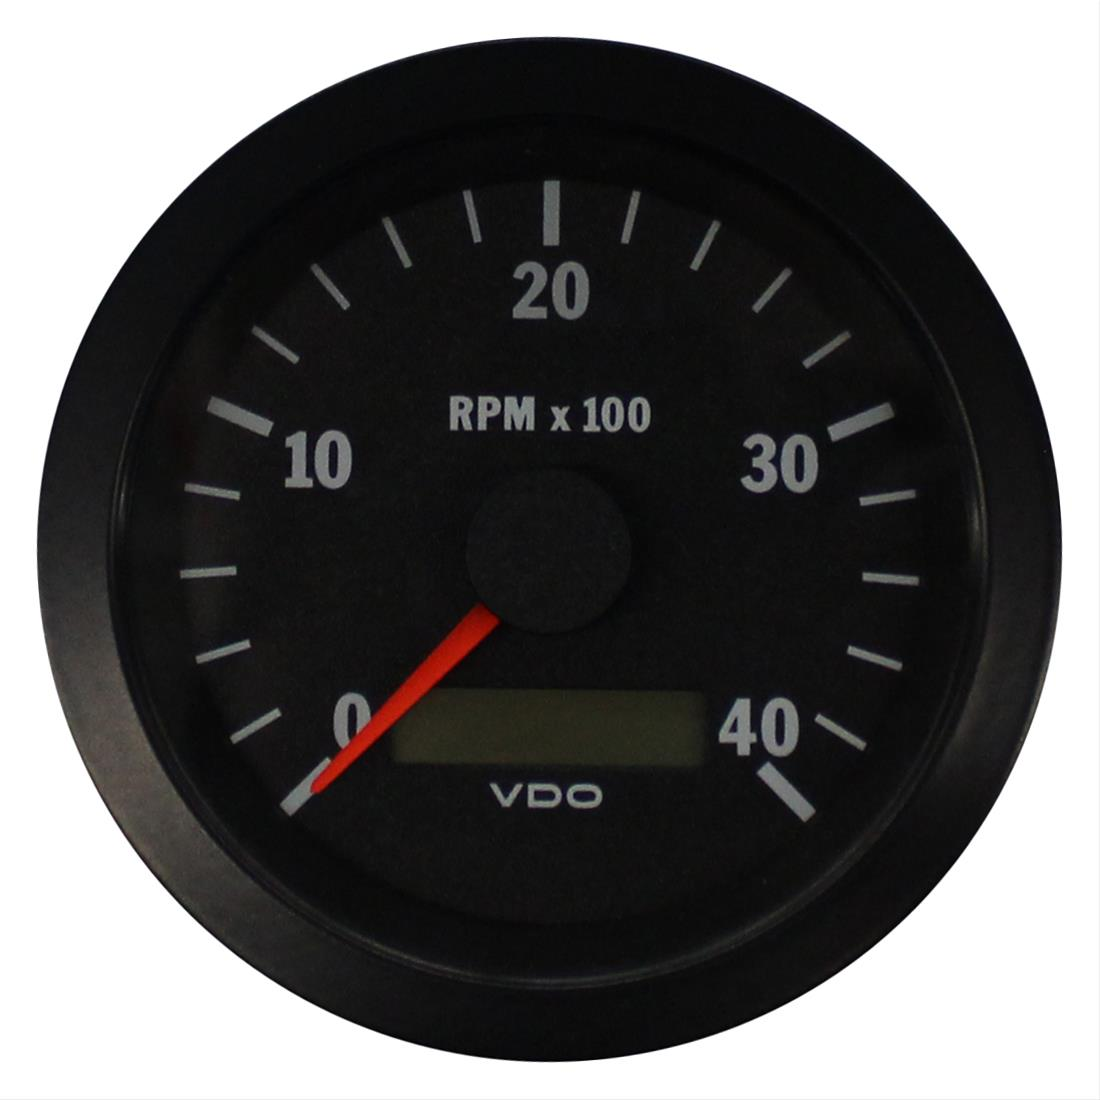 vdo voltmeter gauge wiring diagram radio for 2004 jeep grand cherokee rpm on magneto